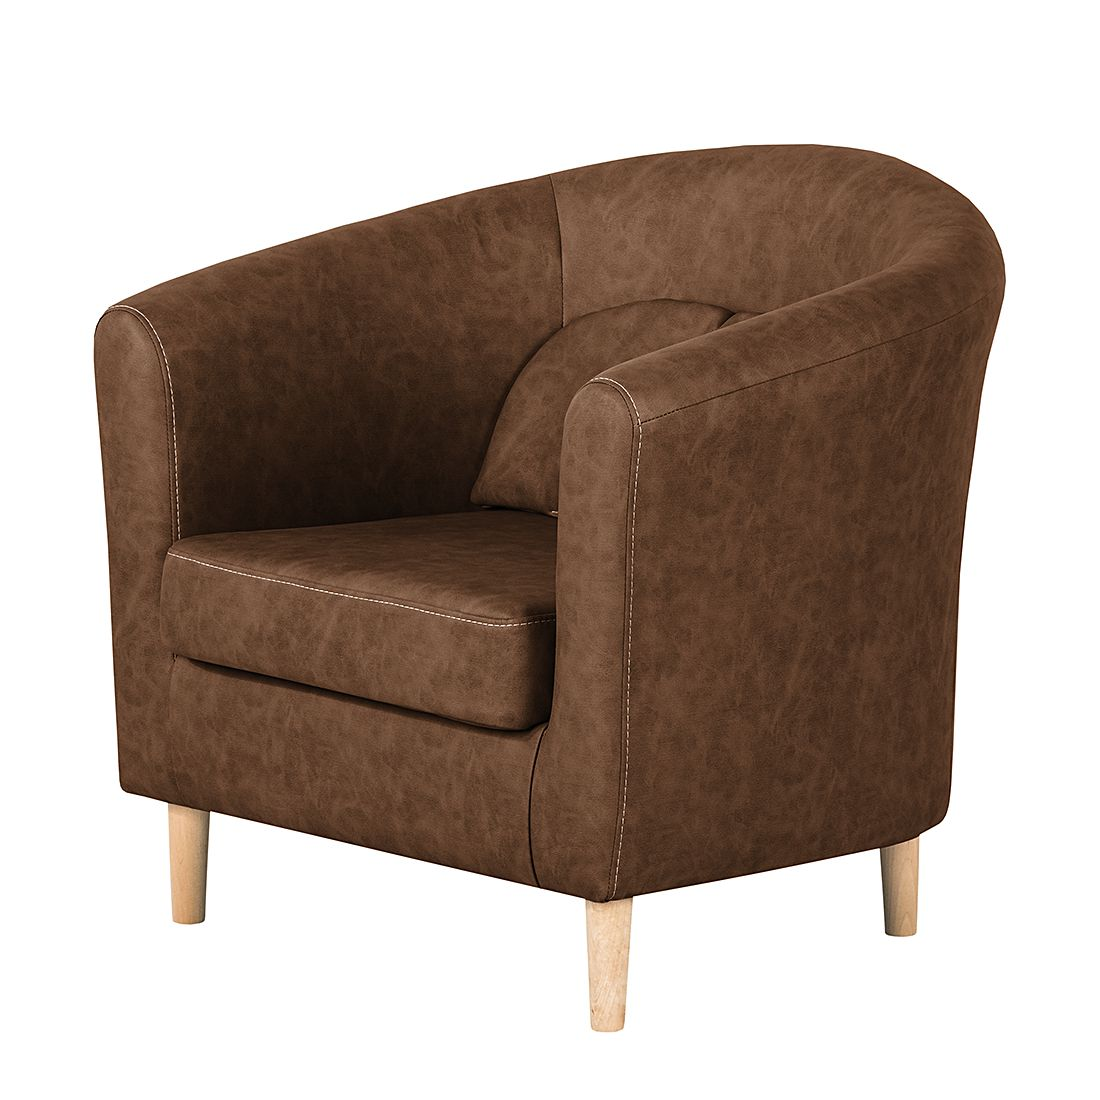 Fauteuil Phillip - Cuir synthétique - Marron chocolat, mooved